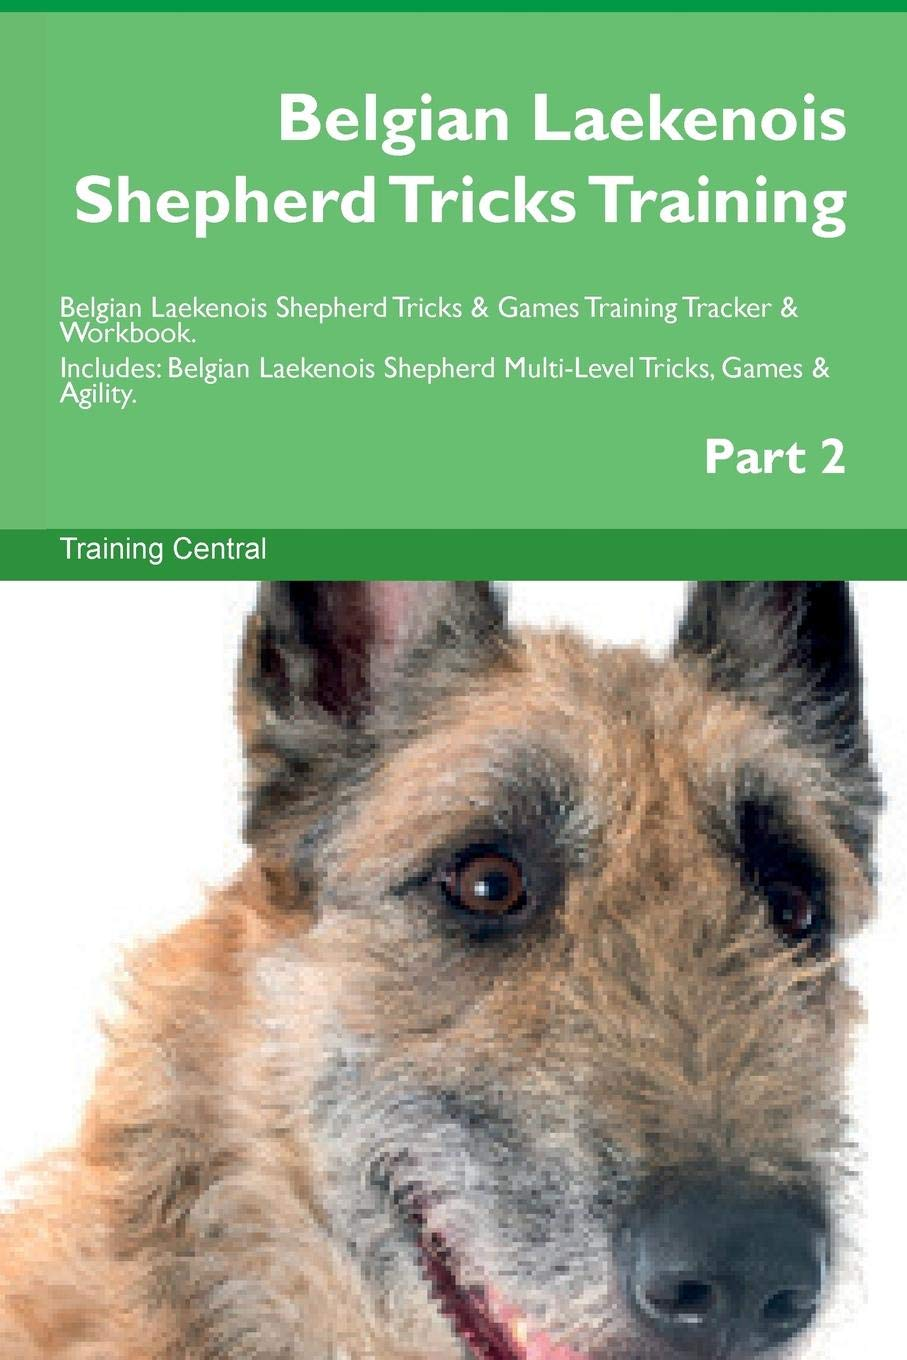 Belgian Laekenois Shepherd Tricks Training Belgian Laekenois Shepherd Tricks & Games Training Tracker & Workbook.  Includes: Belgian Laekenois Shepherd Multi-Level Tricks, Games & Agility. Part 2